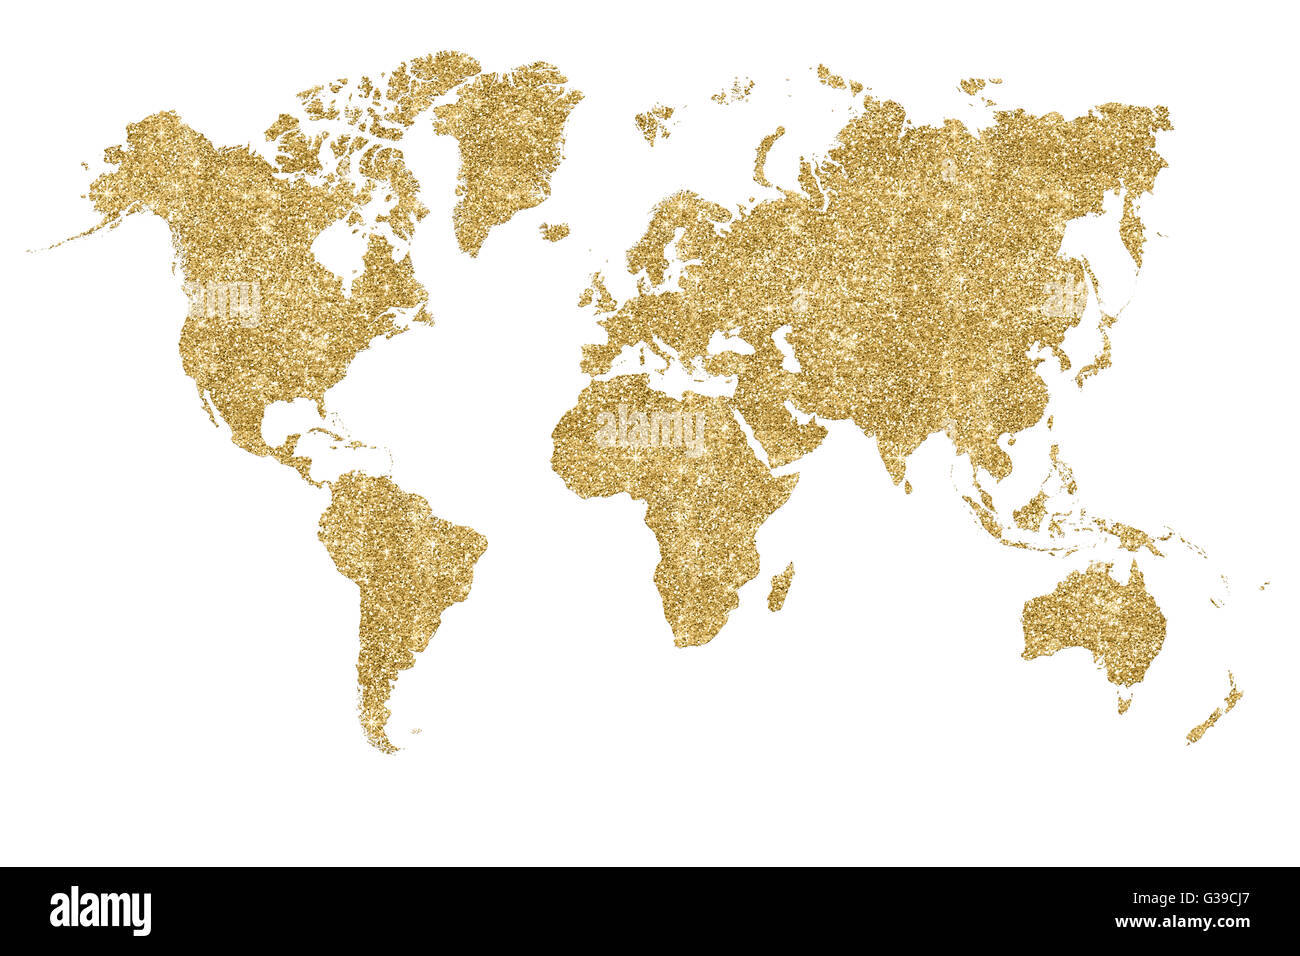 World map filled with gold glitter and sparkles - Stock Image